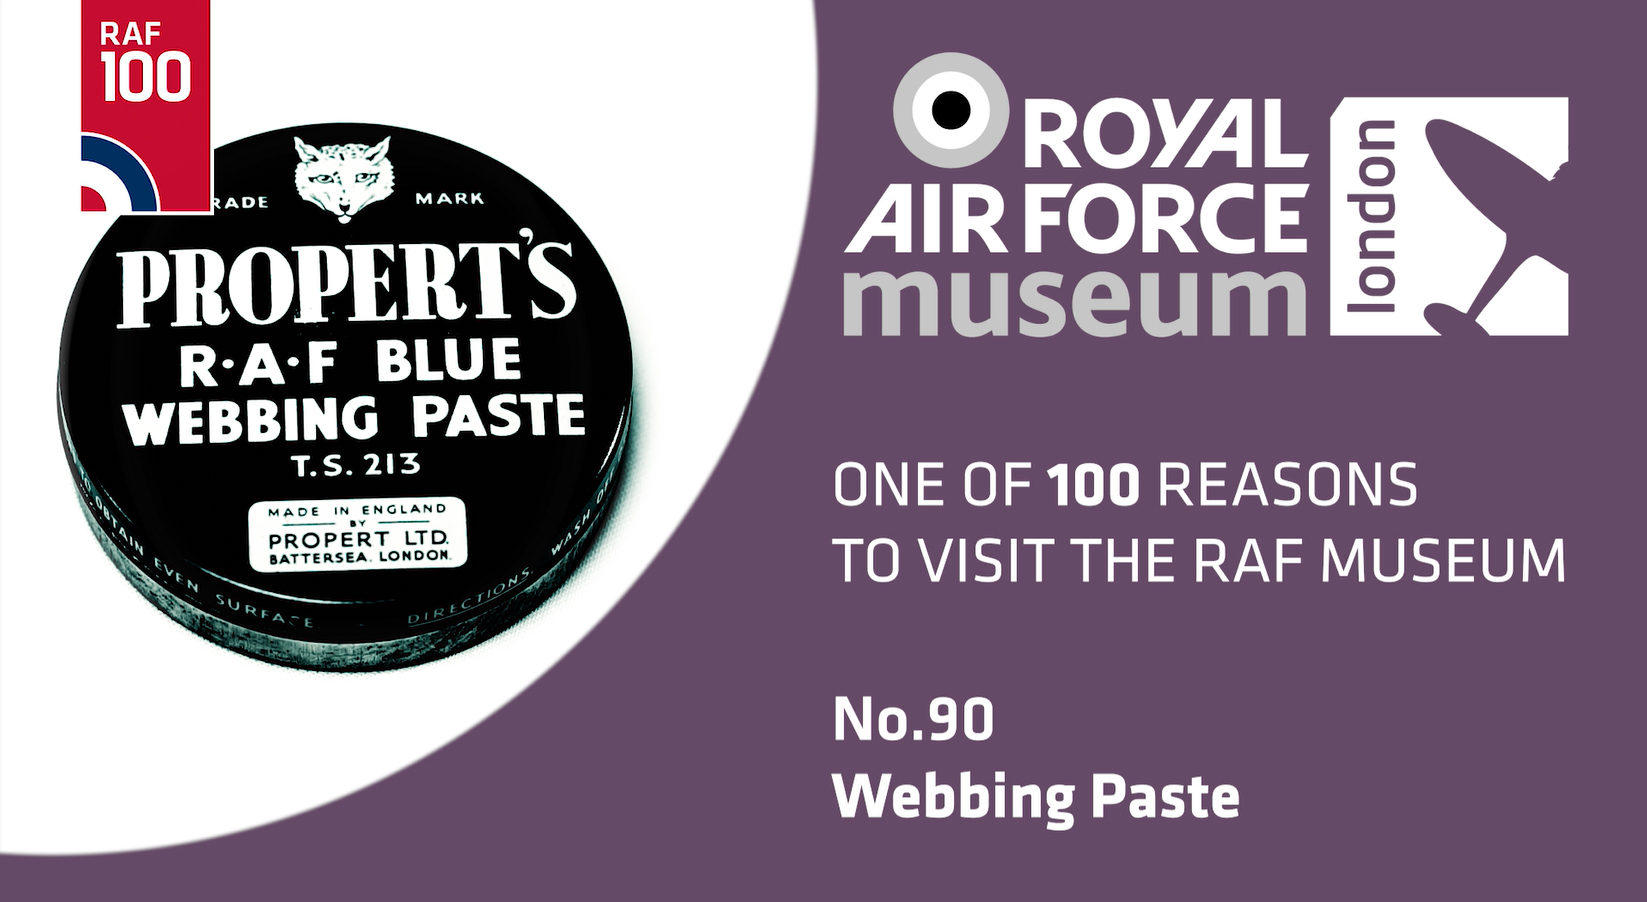 Webbing Paste - one of the 100 reasons to visit the RAF Museum